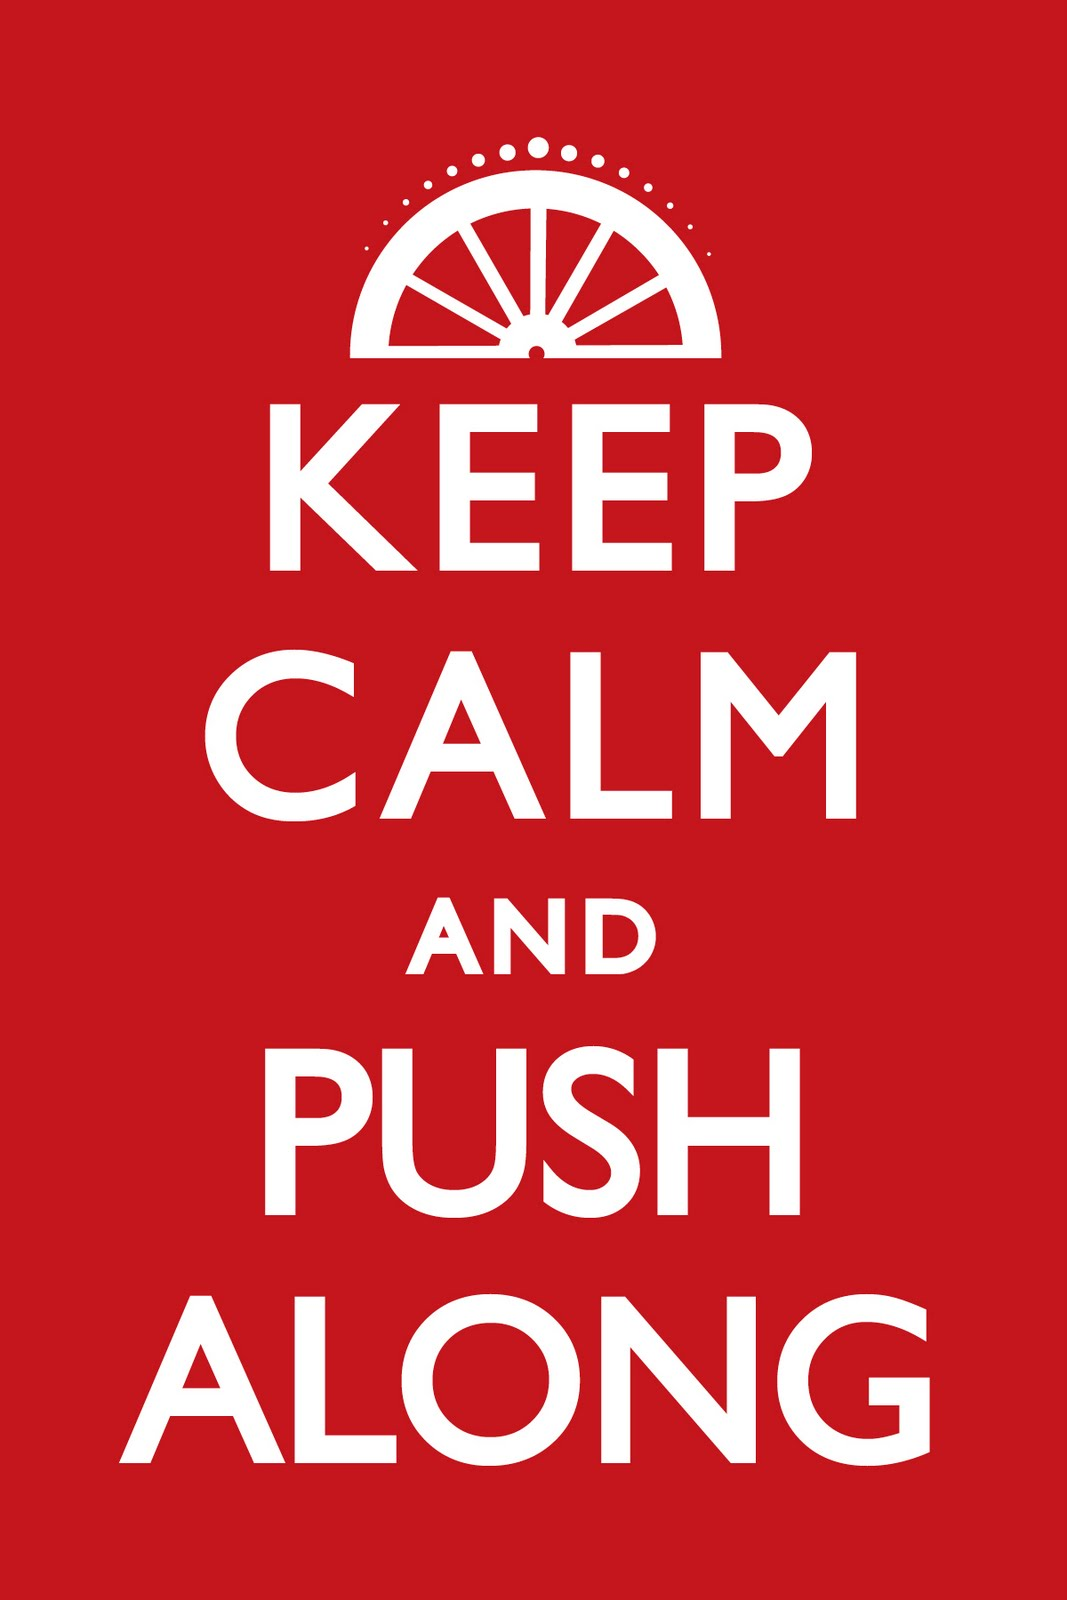 Happy Pioneer Day Keep Calm and Push Along Image